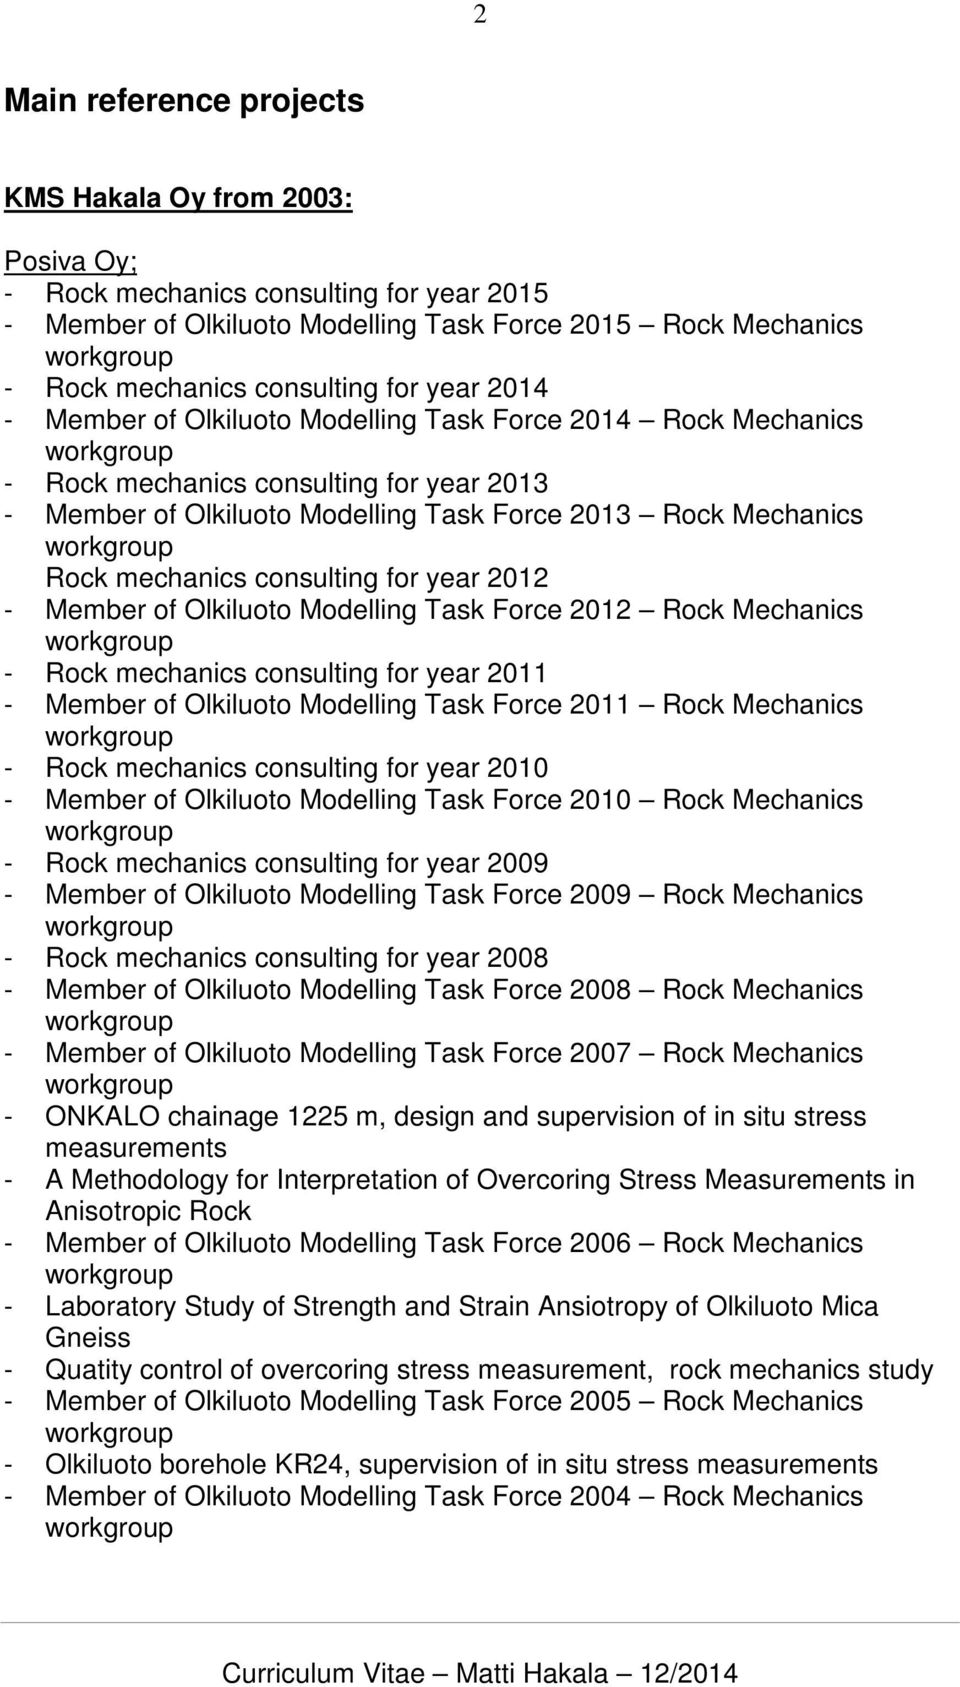 consulting for year 2012 - Member of Olkiluoto Modelling Task Force 2012 Rock Mechanics - Rock mechanics consulting for year 2011 - Member of Olkiluoto Modelling Task Force 2011 Rock Mechanics - Rock